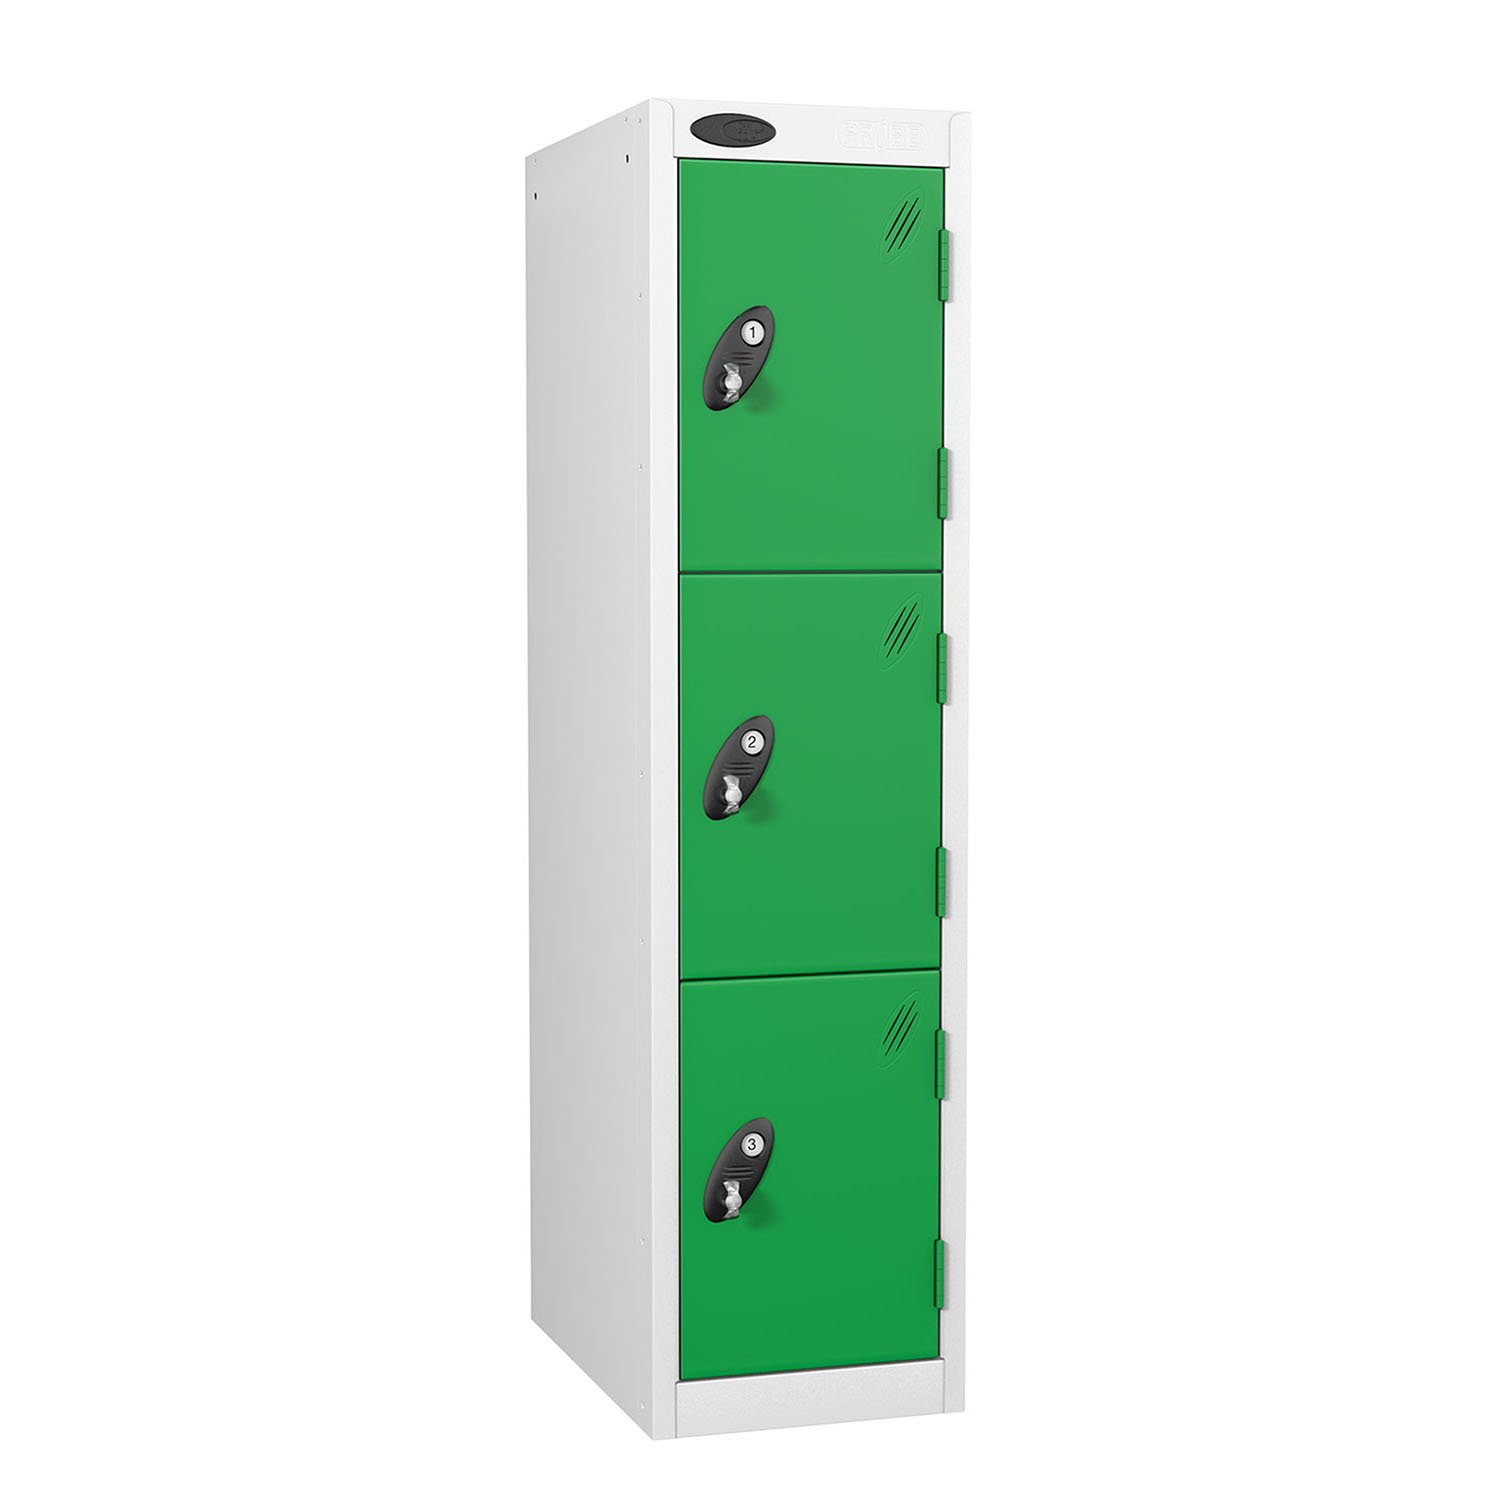 Probe 3 doors low locker in green colour